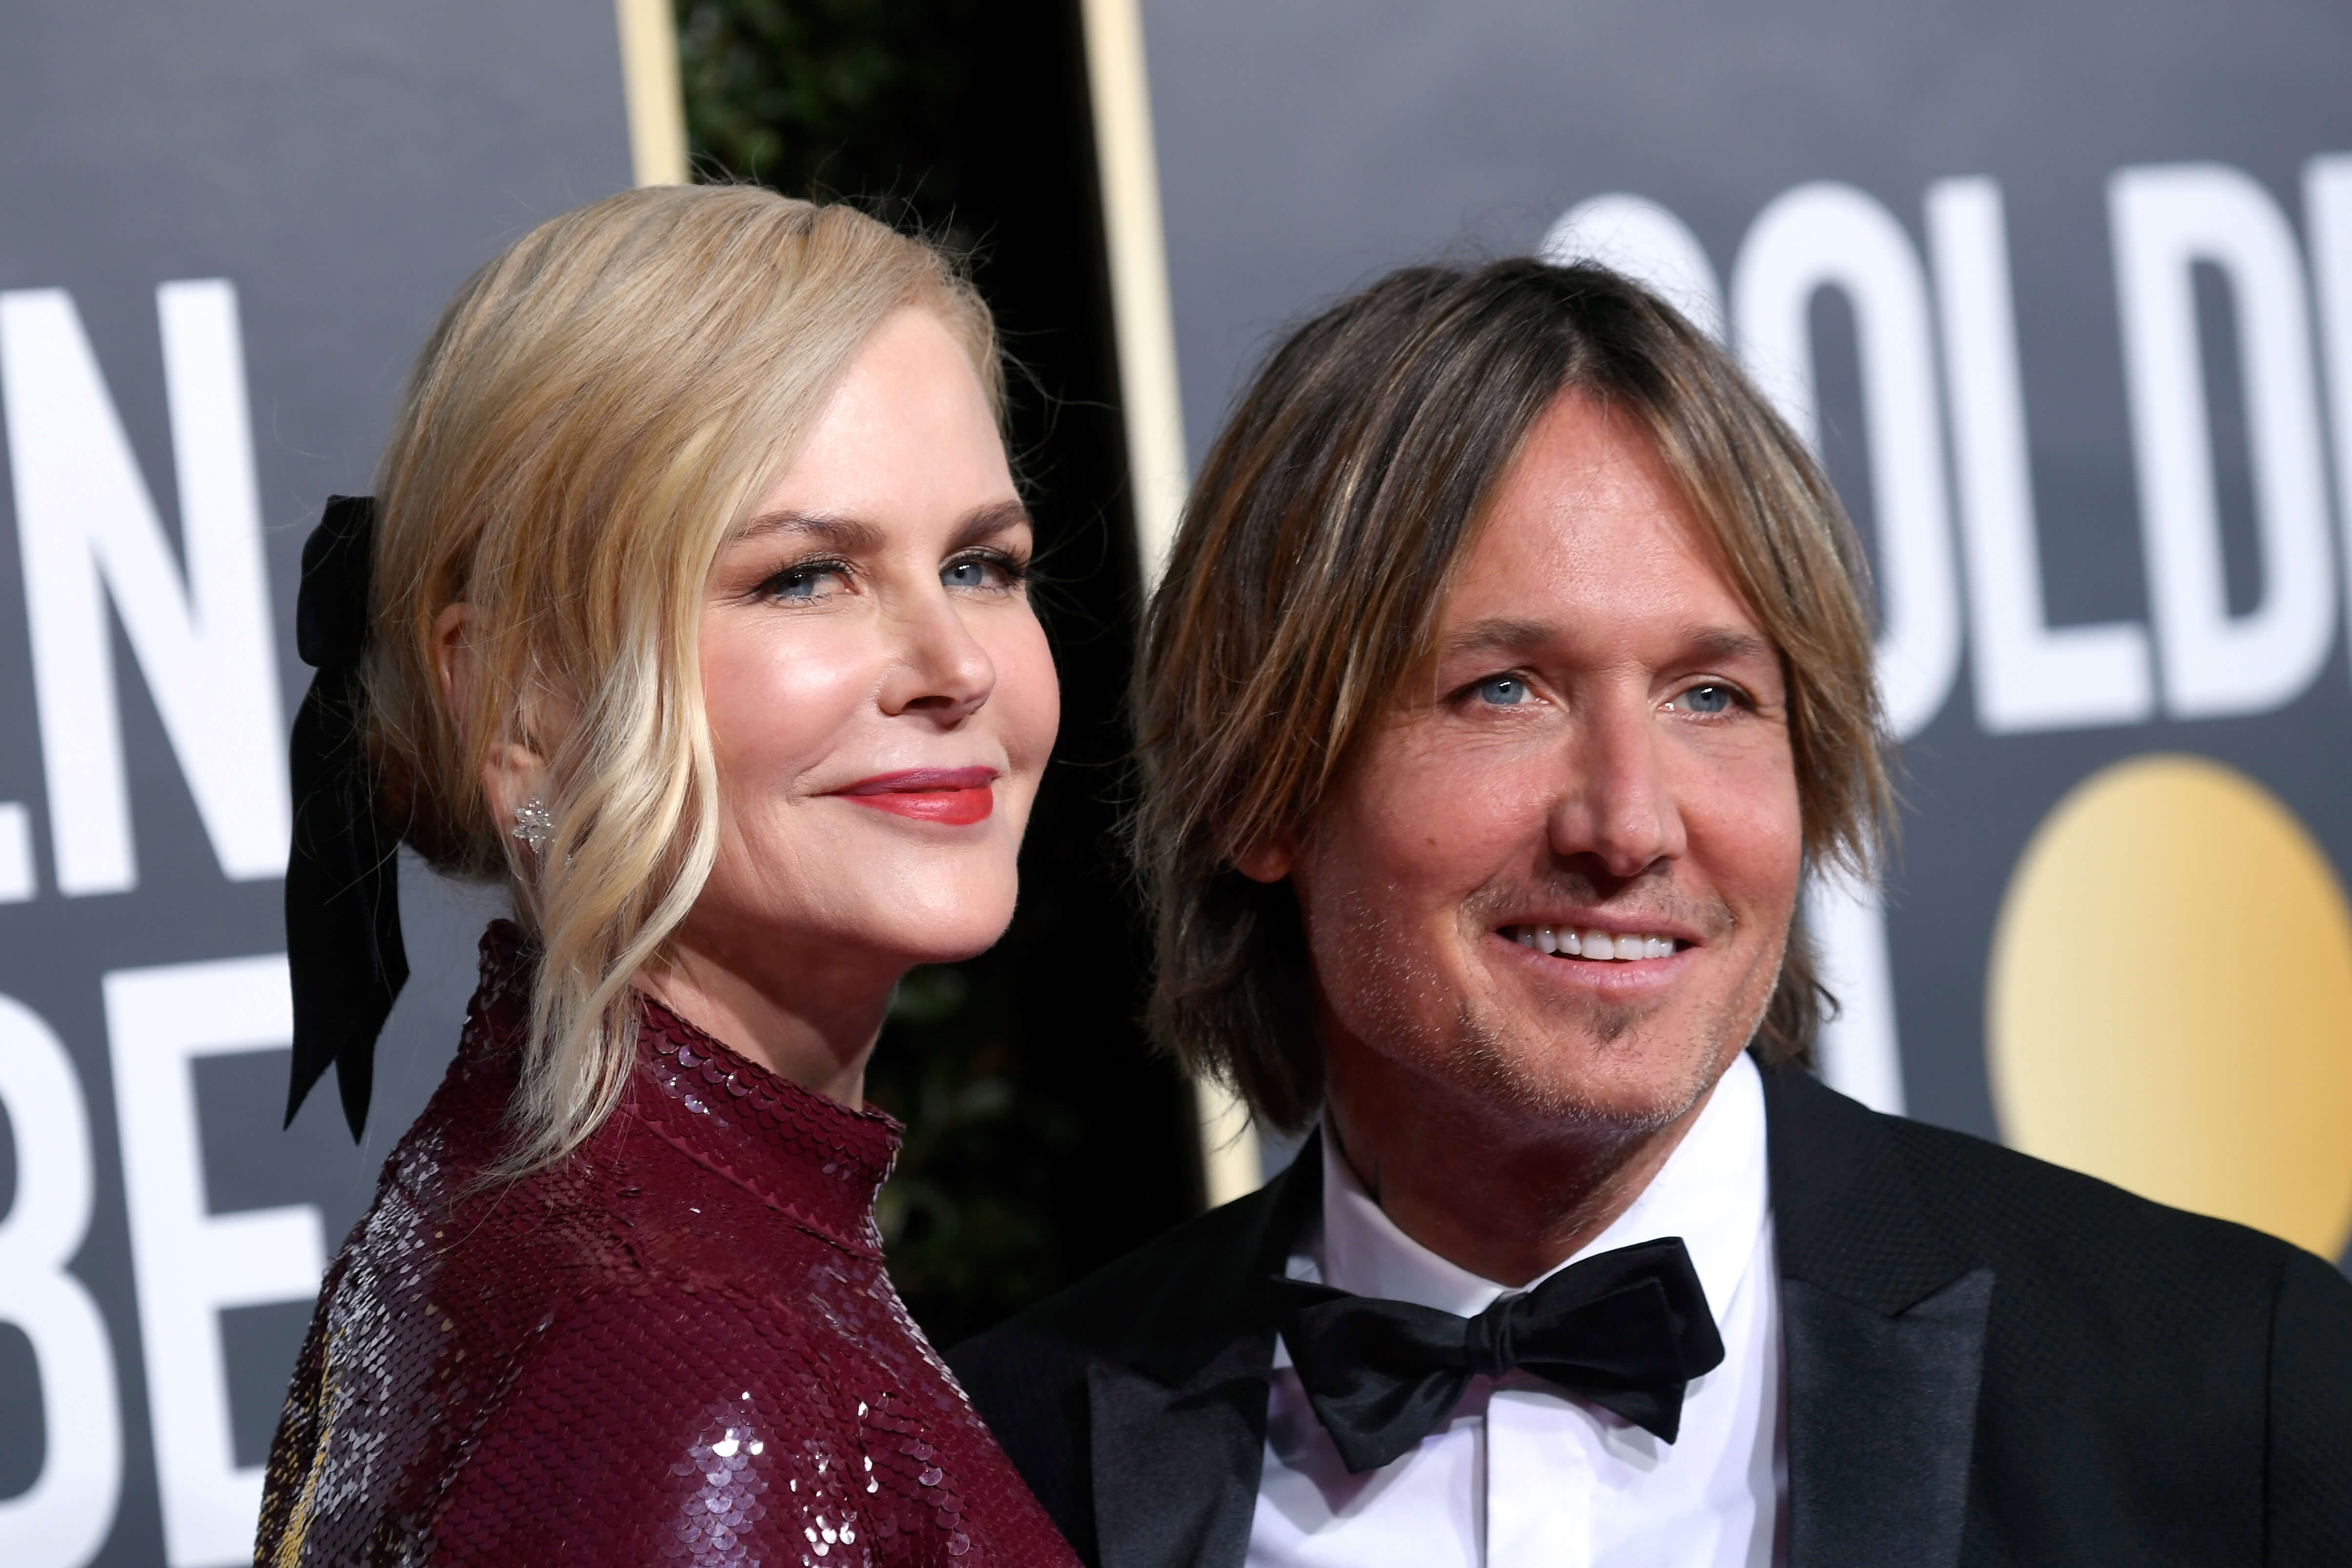 BEVERLY HILLS, CA - JANUARY 06: Nicole Kidman (L) and Keith Urban attend the 76th Annual Golden Globe Awards at The Beverly Hilton Hotel on January 6, 2019 in Beverly Hills, California. (Photo by Frazer Harrison/Getty Images)